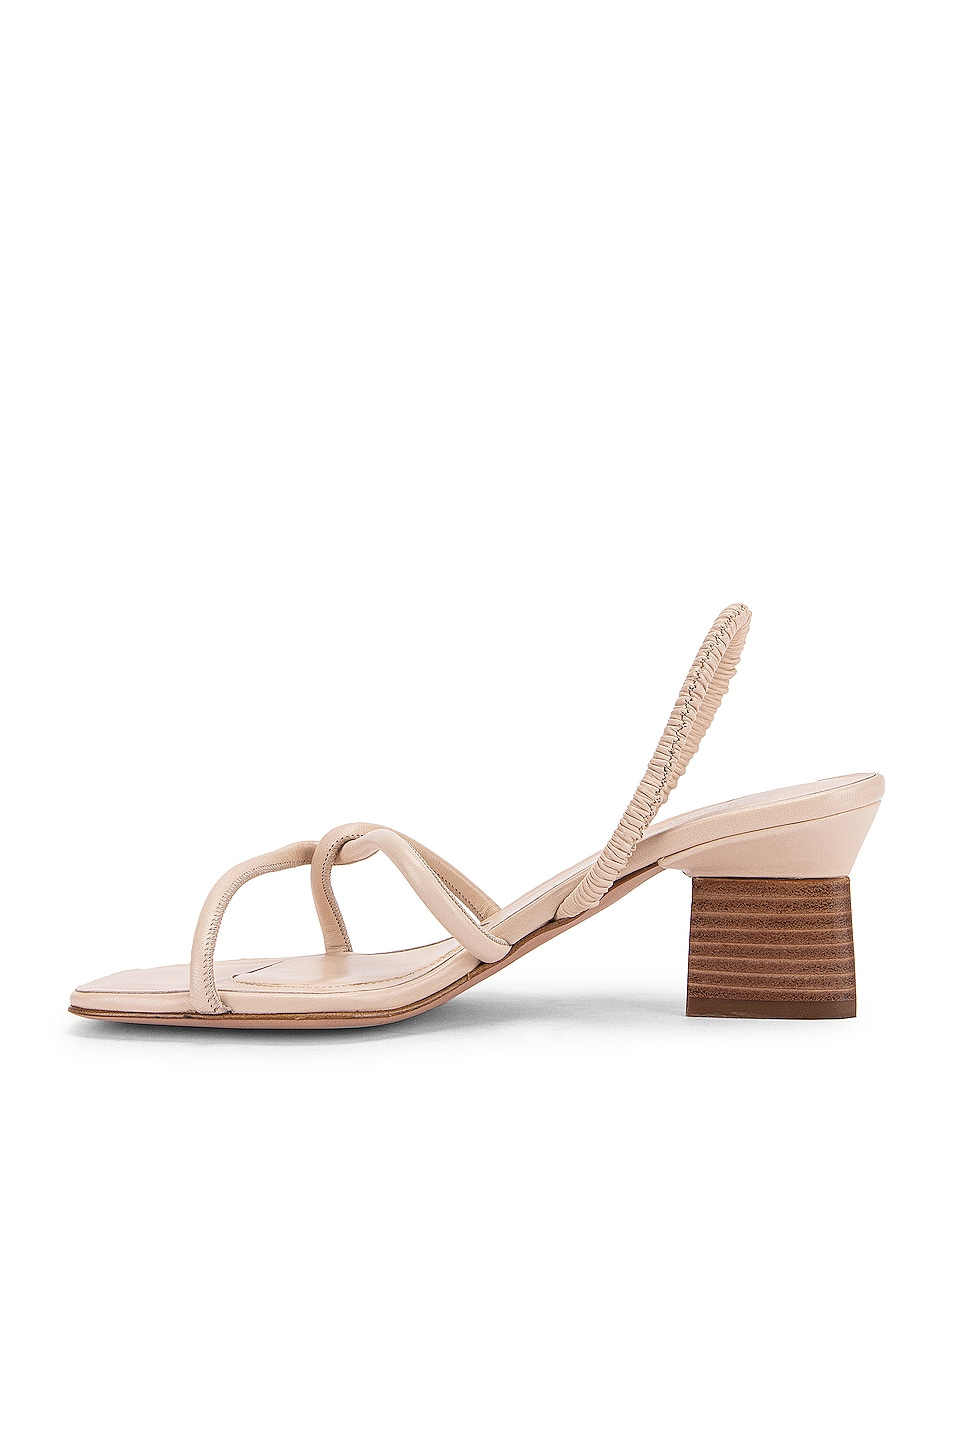 Image 5 of Rosetta Getty Strappy Heeled Slingback Sandals in Parchment